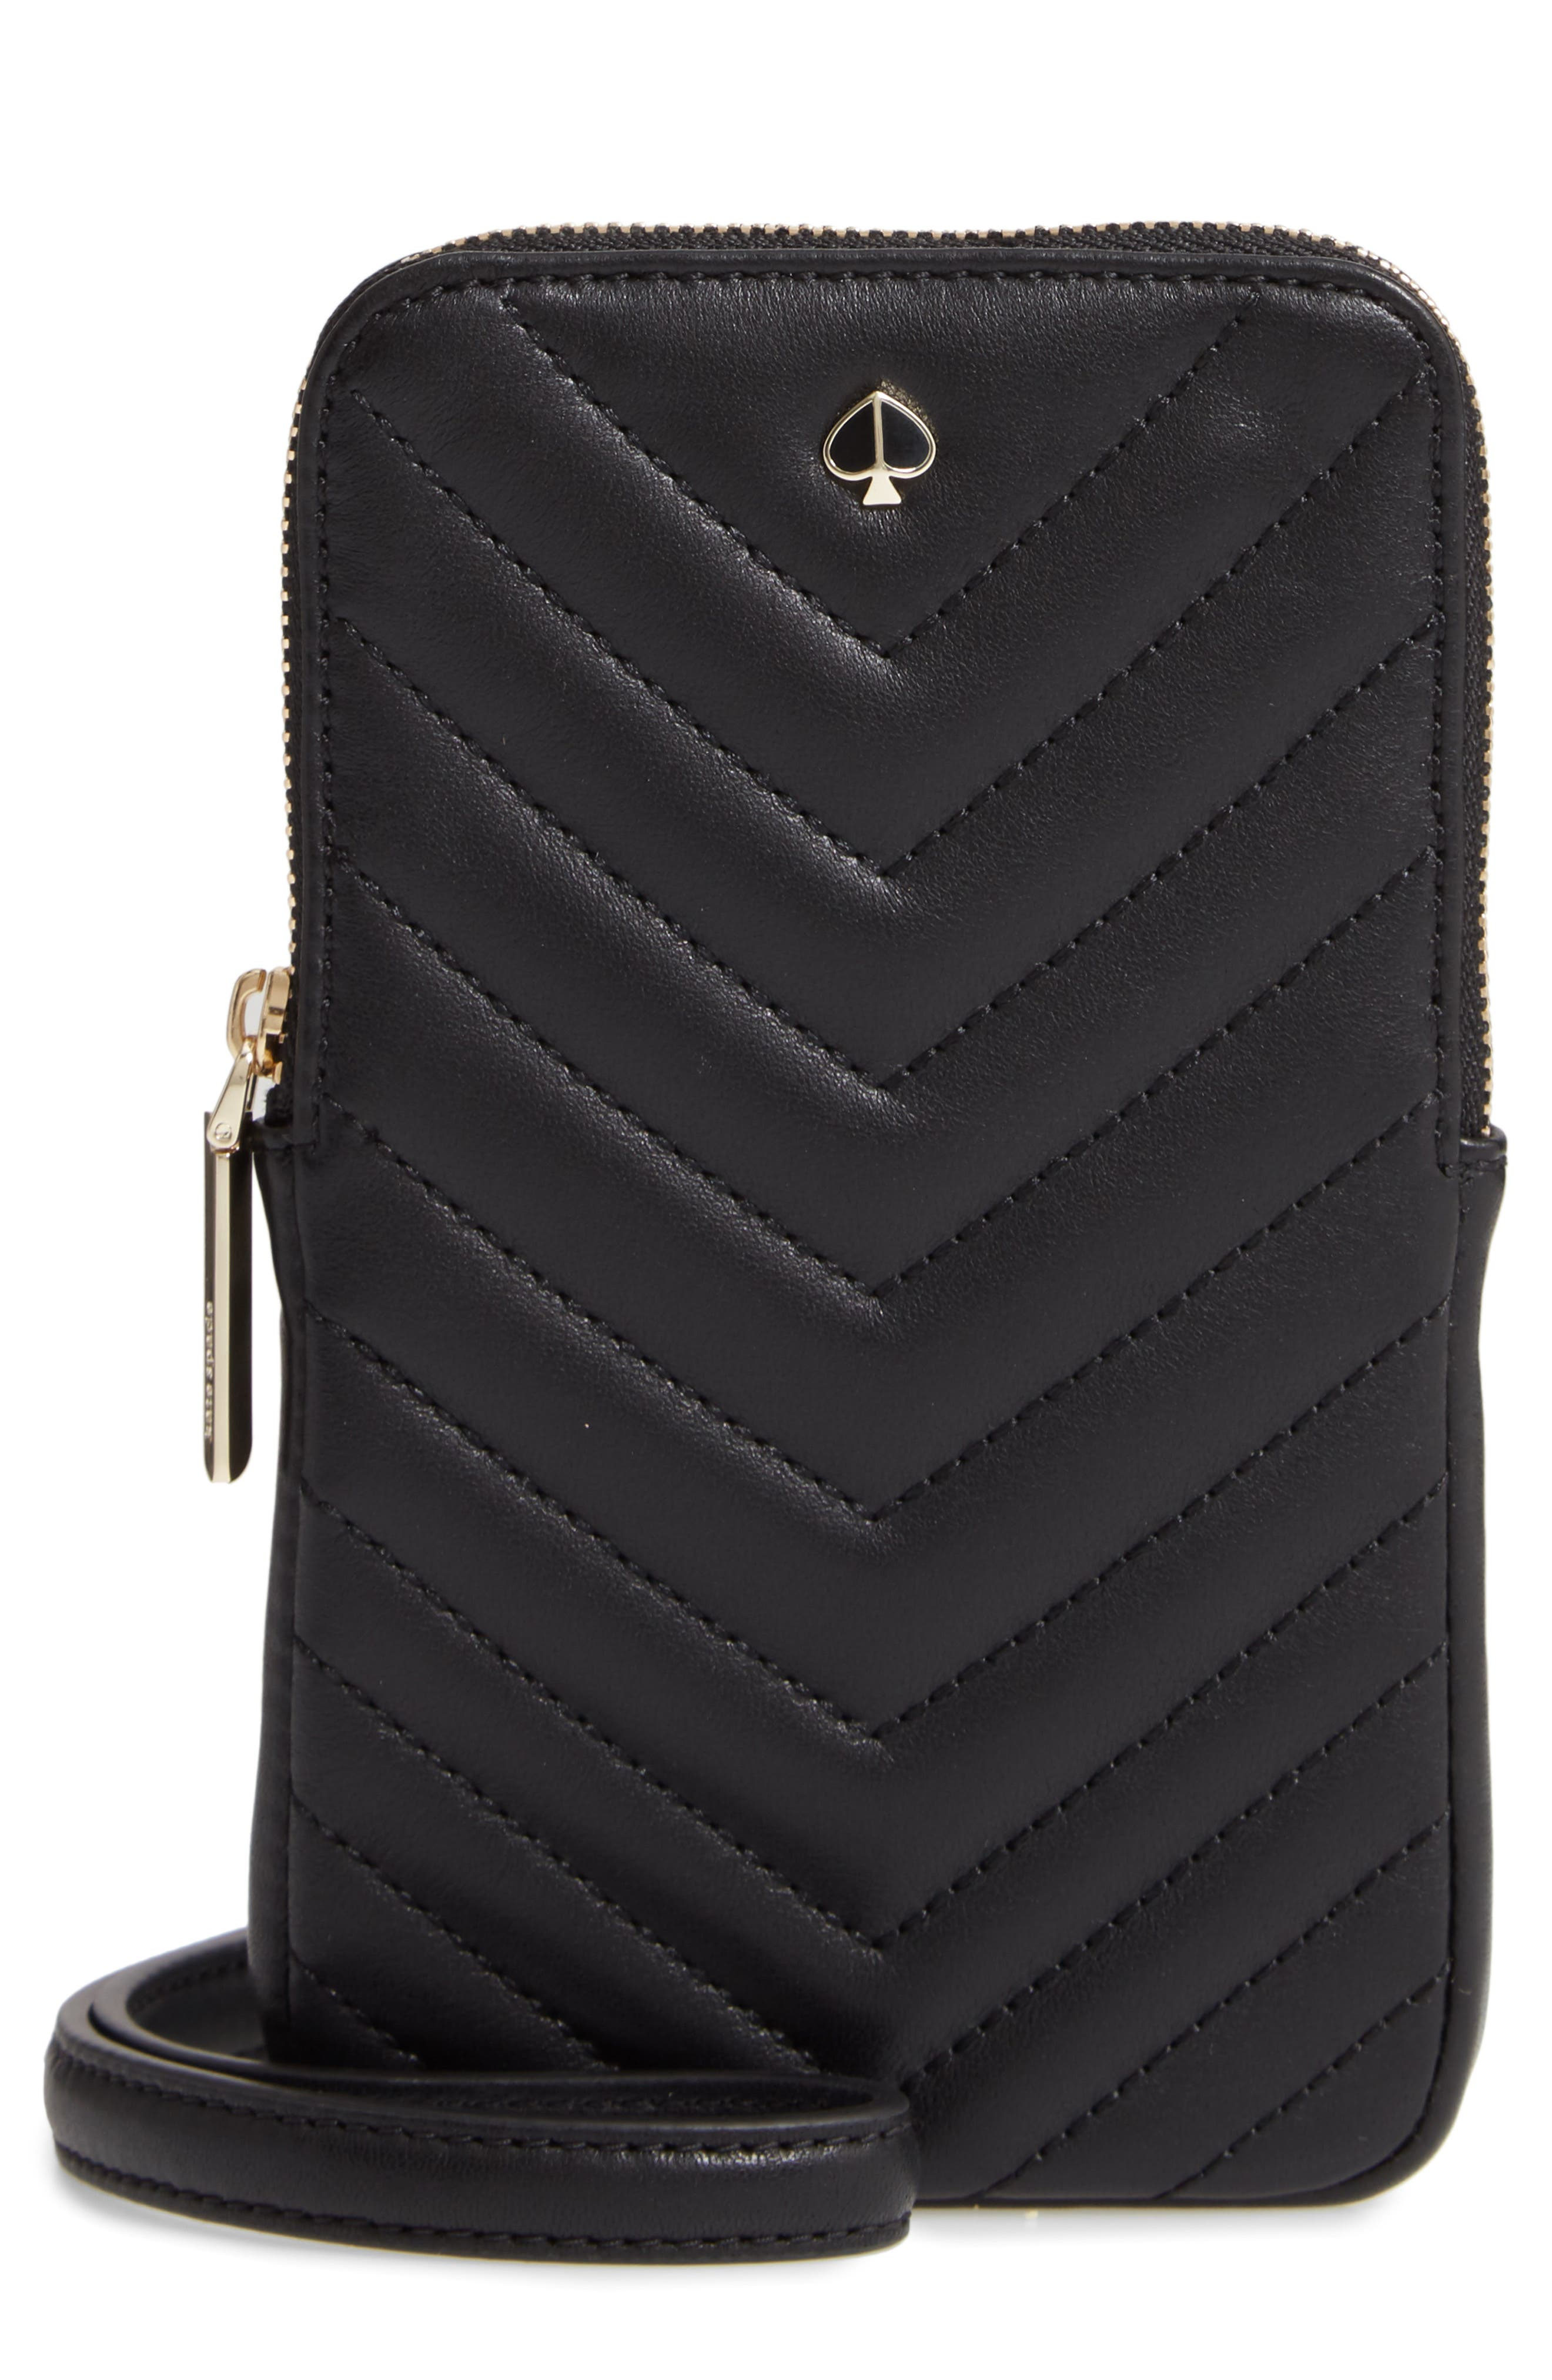 amelia quilted leather phone crossbody bag, Main, color, BLACK